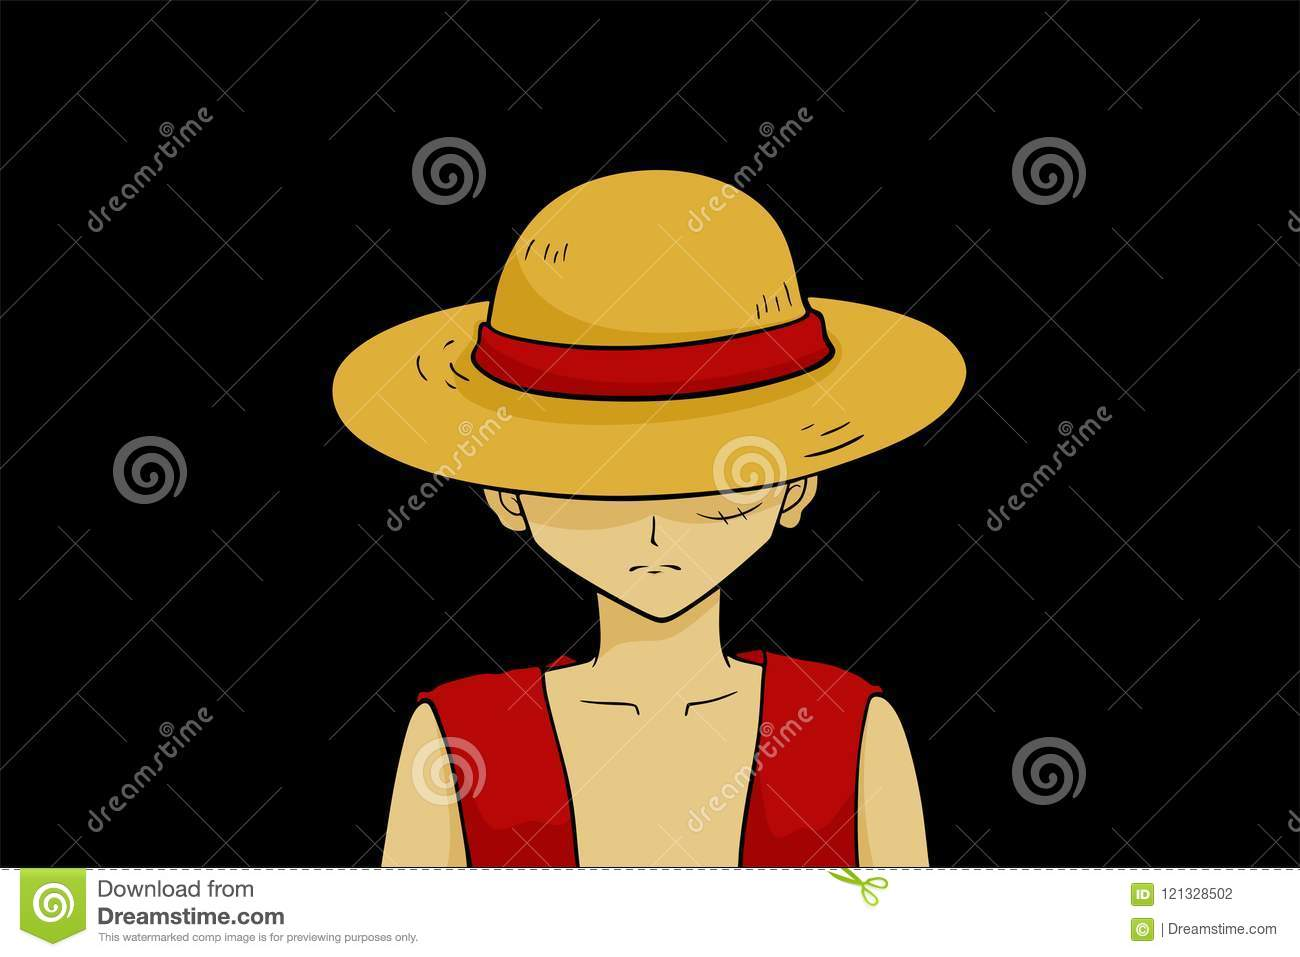 luffy the main character of one piece stock vector - illustration of